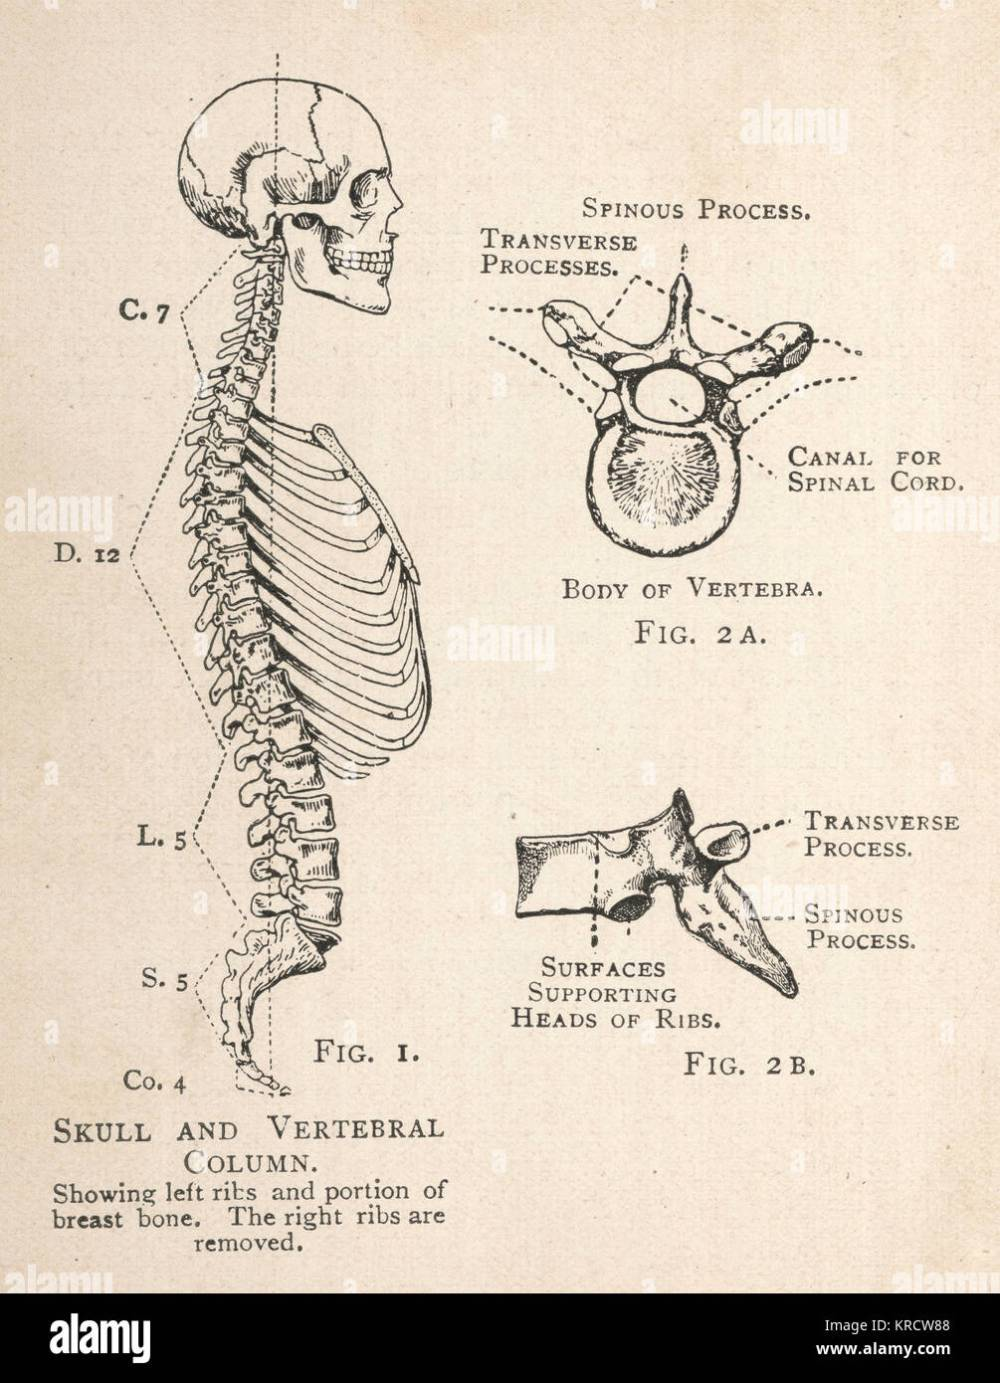 medium resolution of a diagram of the human skull and vertebral column showing the left ribs and a portion of the breastbone as well as a single vertebra from two angles